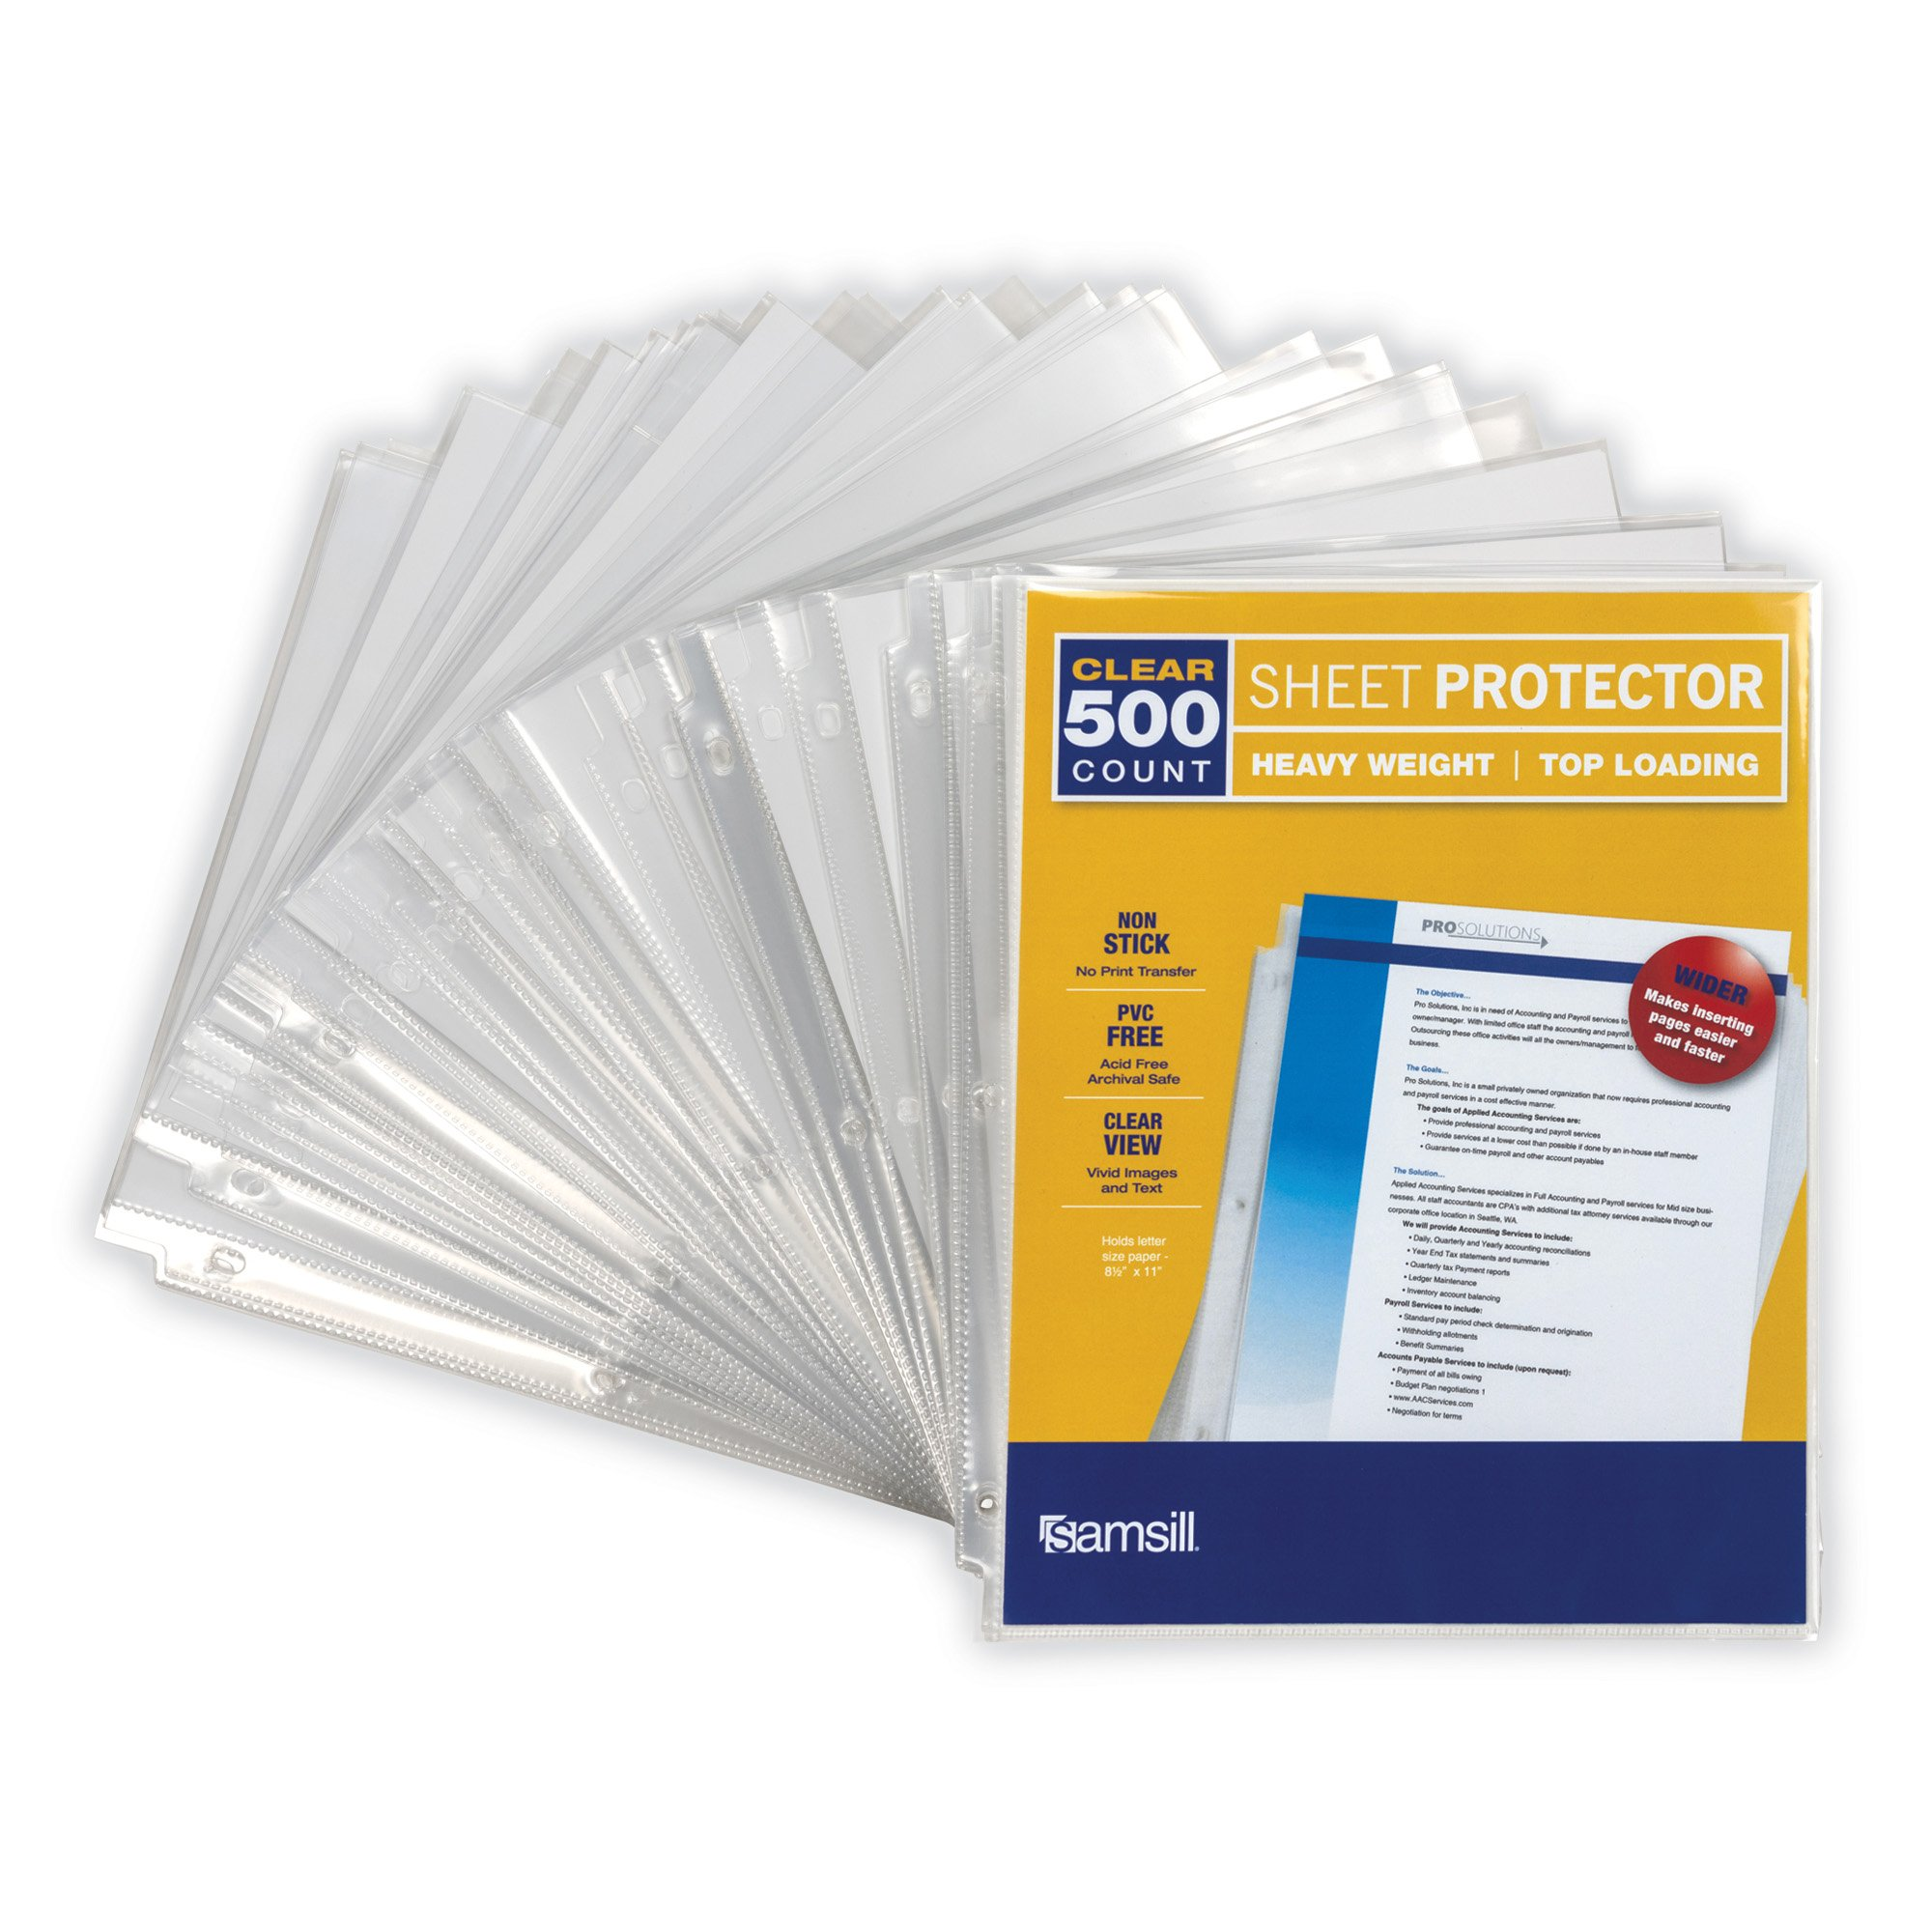 """Samsill Clear Heavyweight 3.3 MIL Thickness, Top Loading Reinforced 3 Hole Punched Sheet Protectors, Archival Safe Won't Harm Photos or Printed Copy, for 8.5 x 11"""" Documents, Box of 500, Acid Free"""